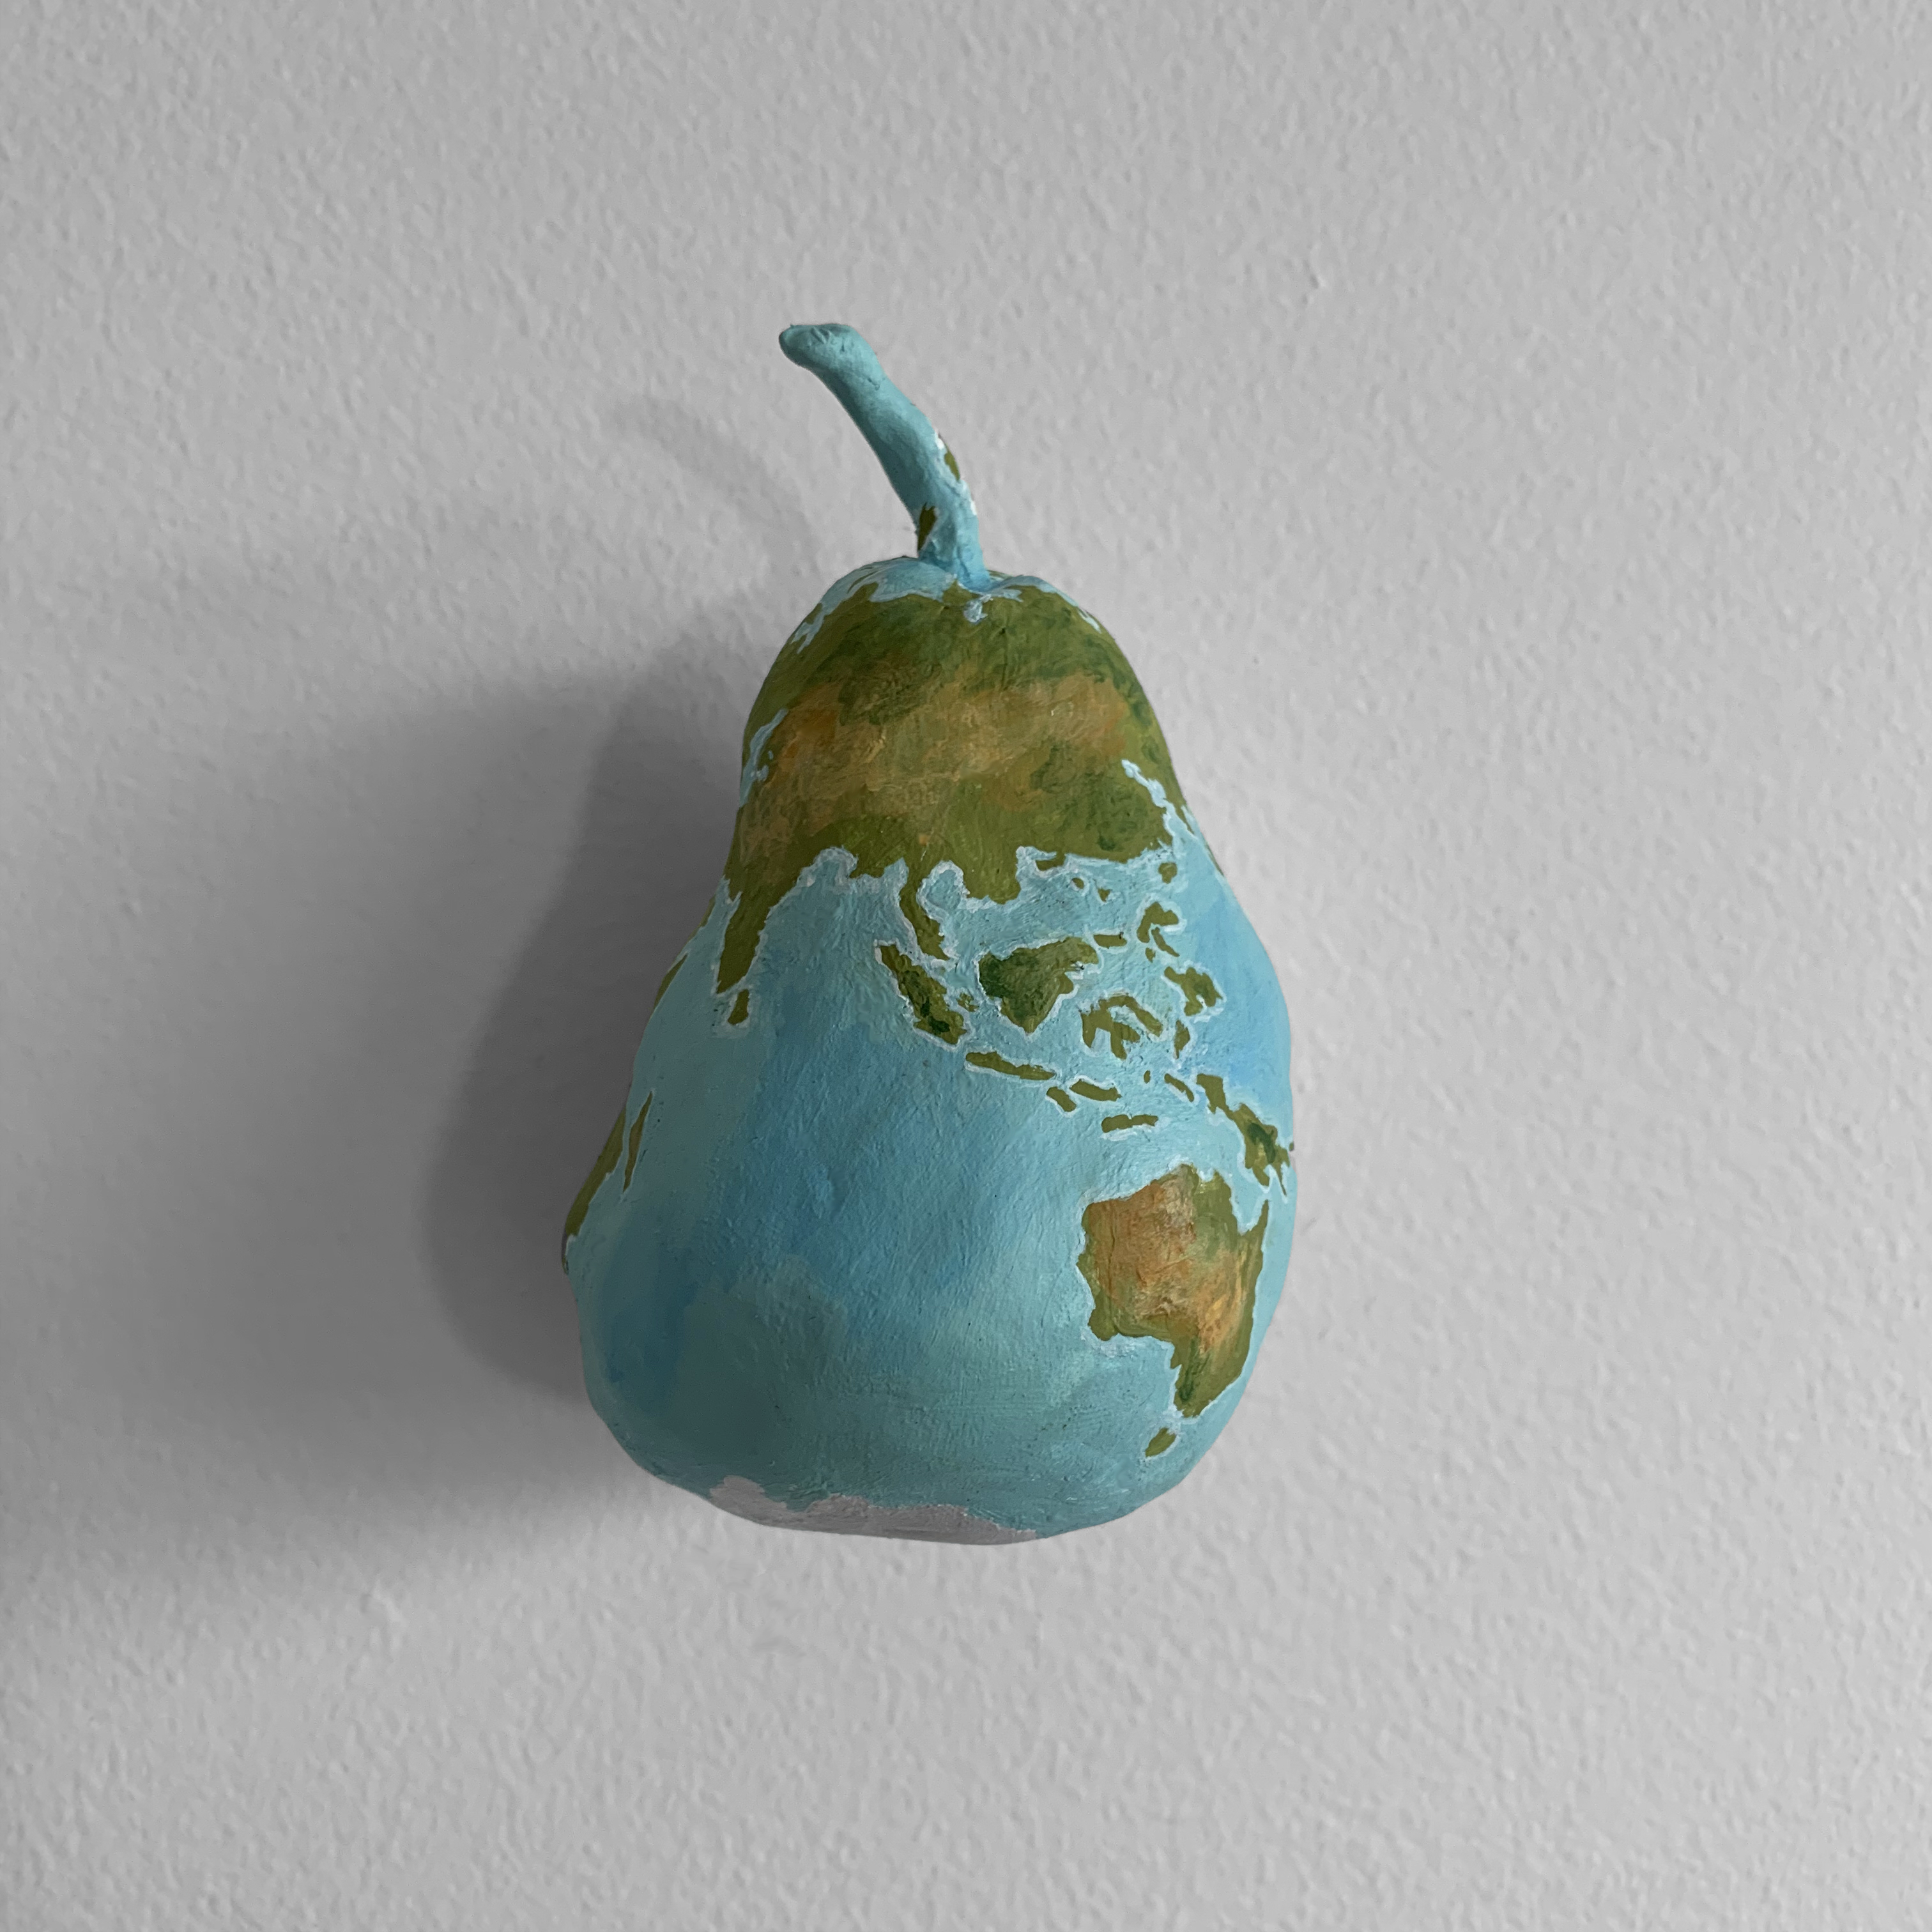 02-The-worlds-gone-pear-shaped.-Kenny-Pittock.-2020